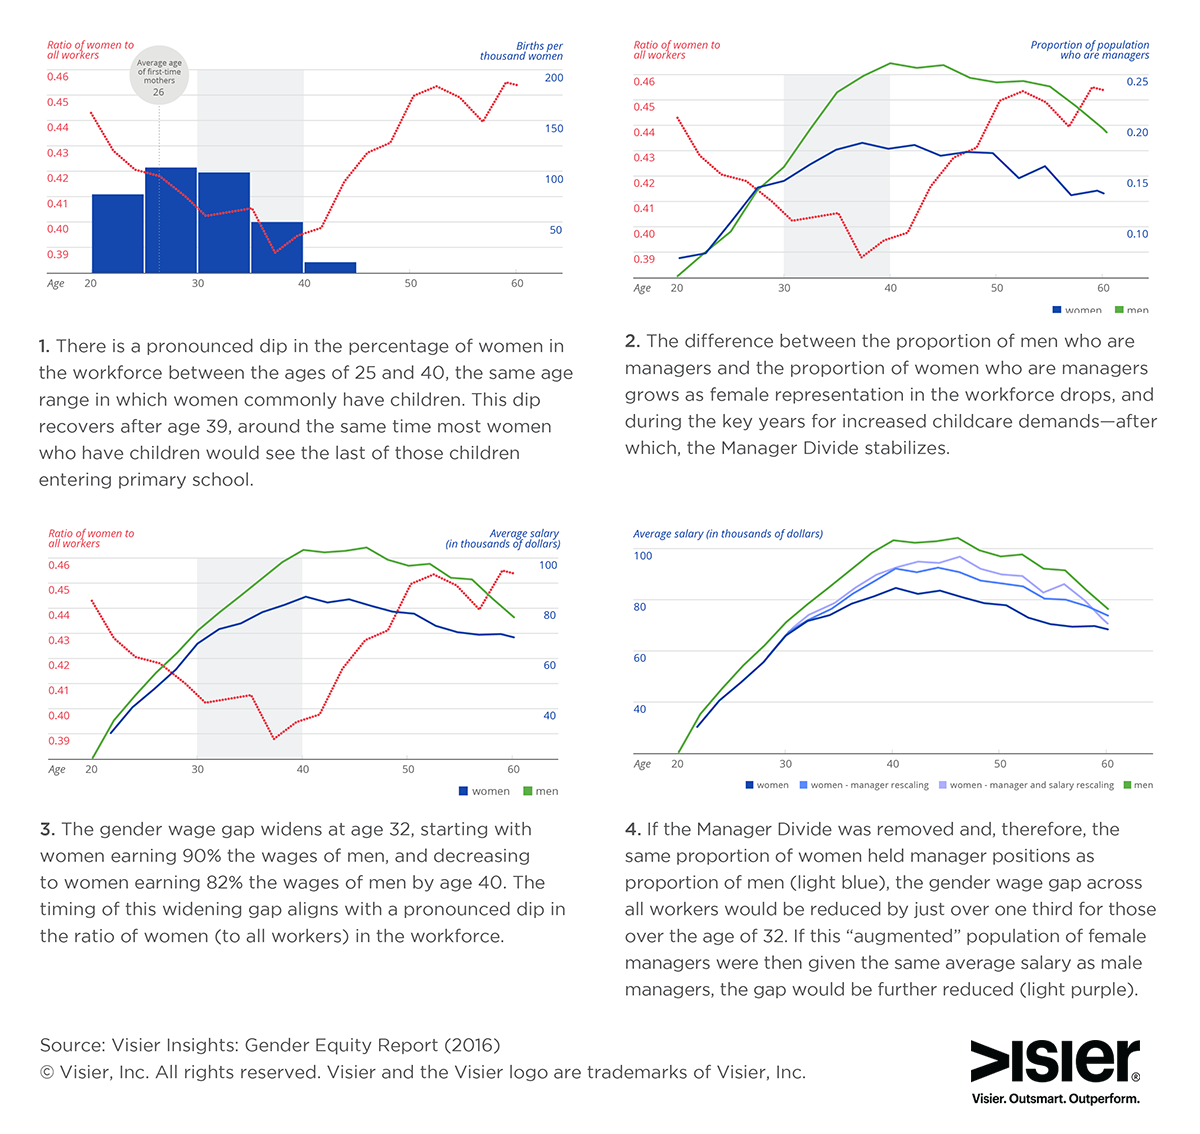 Key findings from the Visier Insights Gender Report about Gender Equity in the Workplace